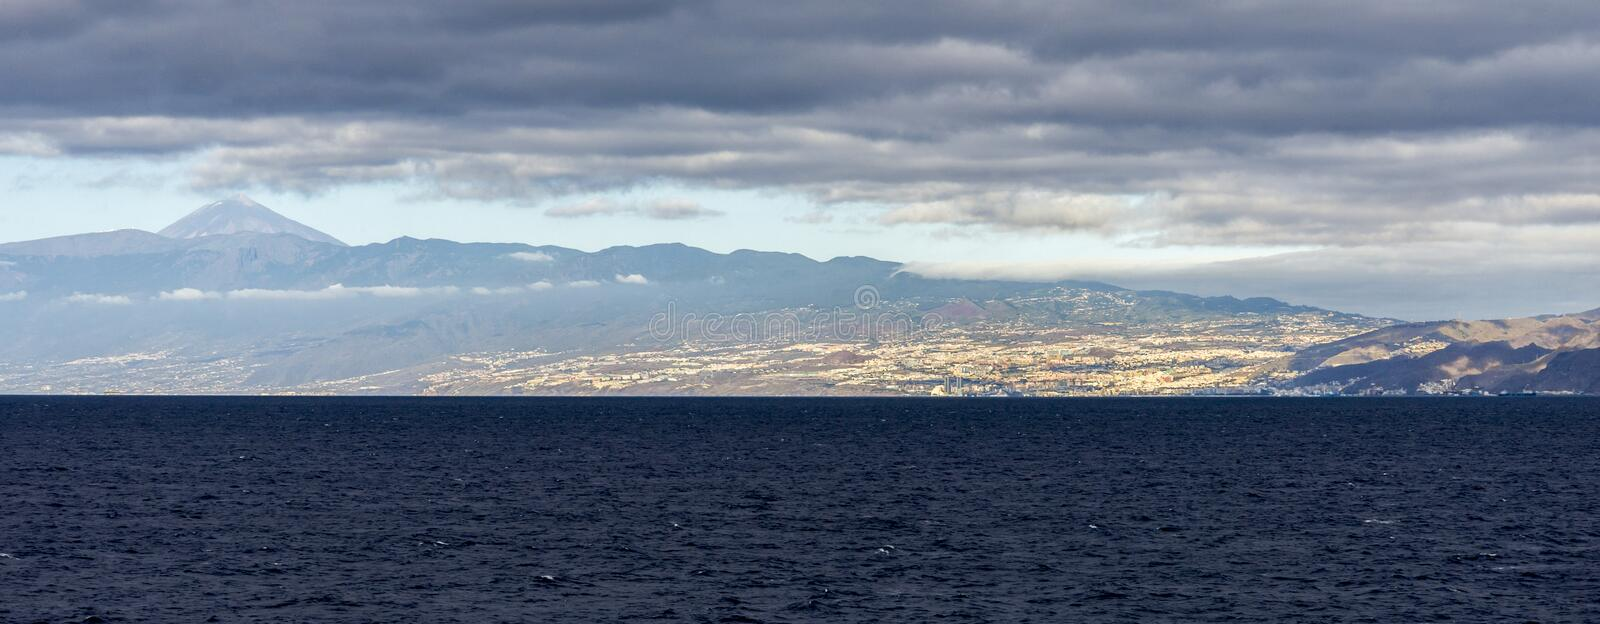 Distant panoramic view of Santa Cruz de Tenerife city with Mount Teide summit in the background, Canary Islands, Spain stock photos